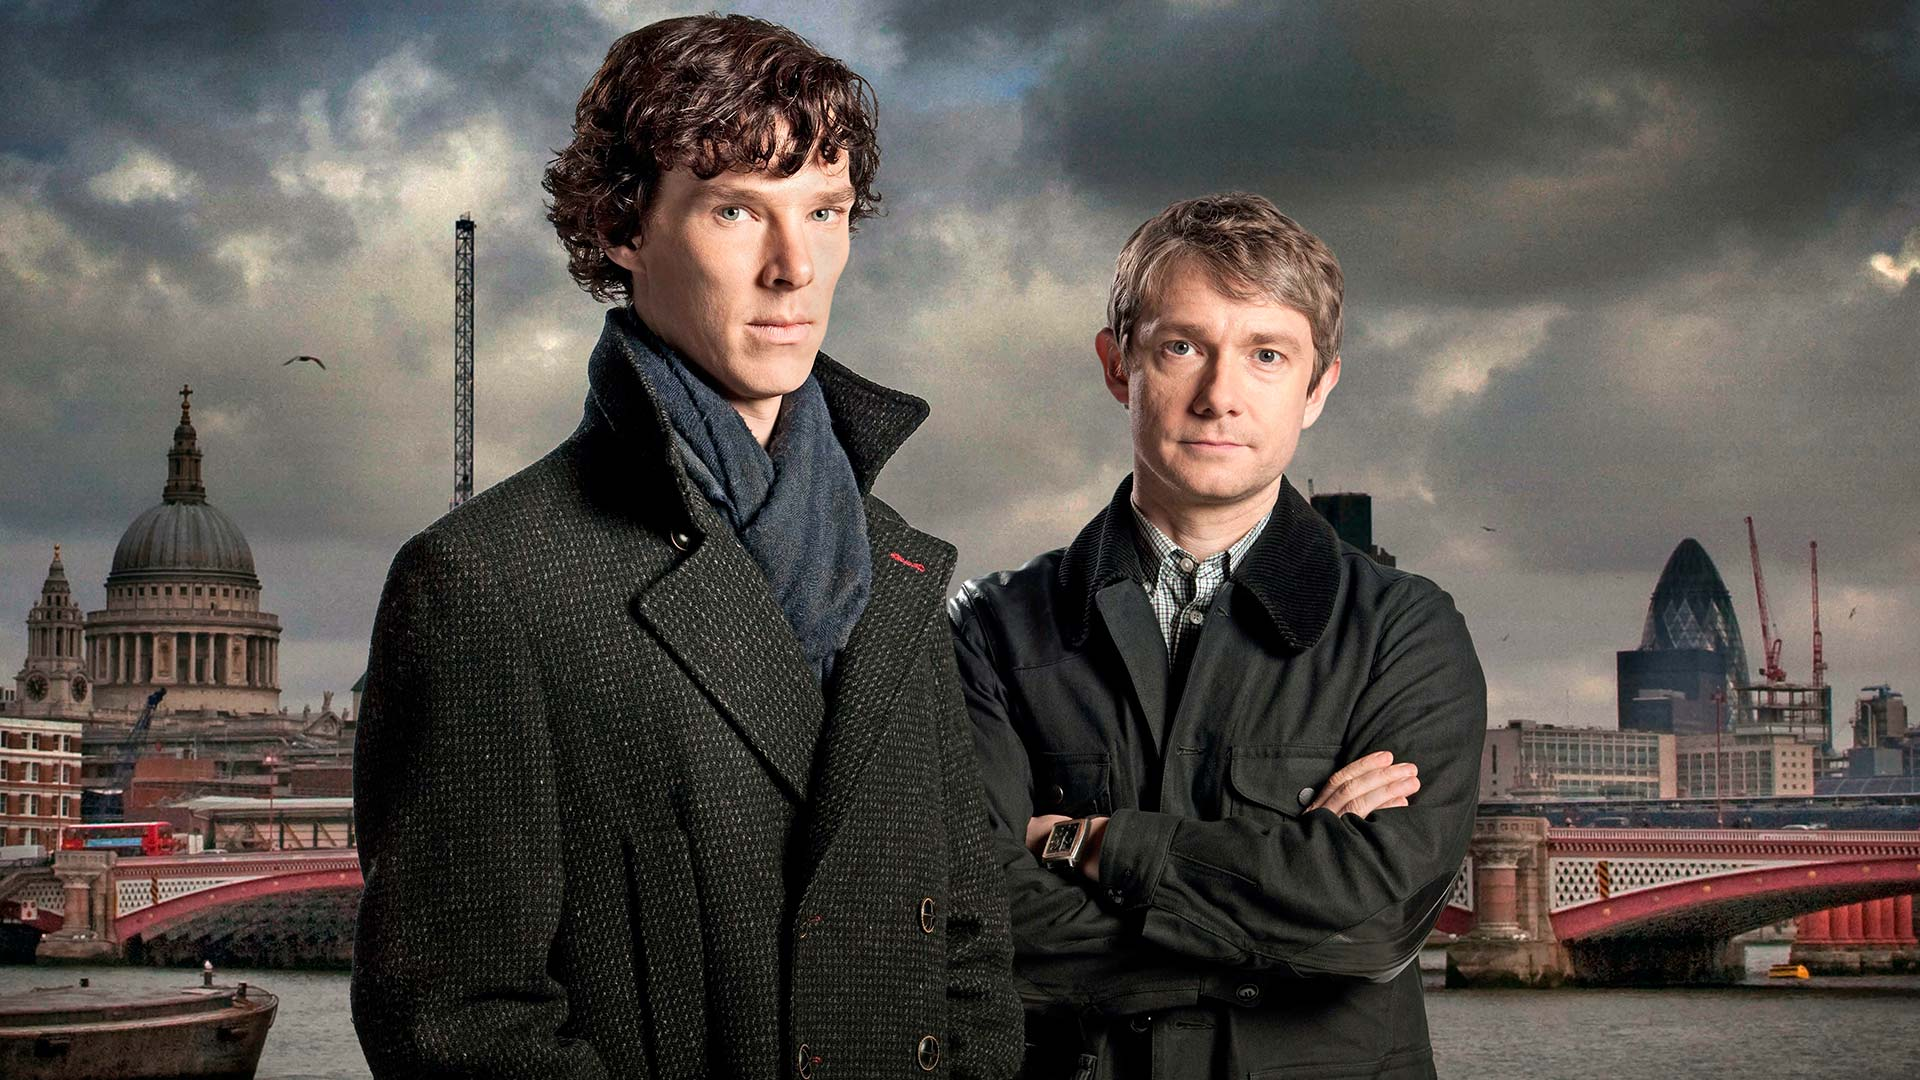 Dracula Series From Sherlock Creators Ordered By BBC & Netflix